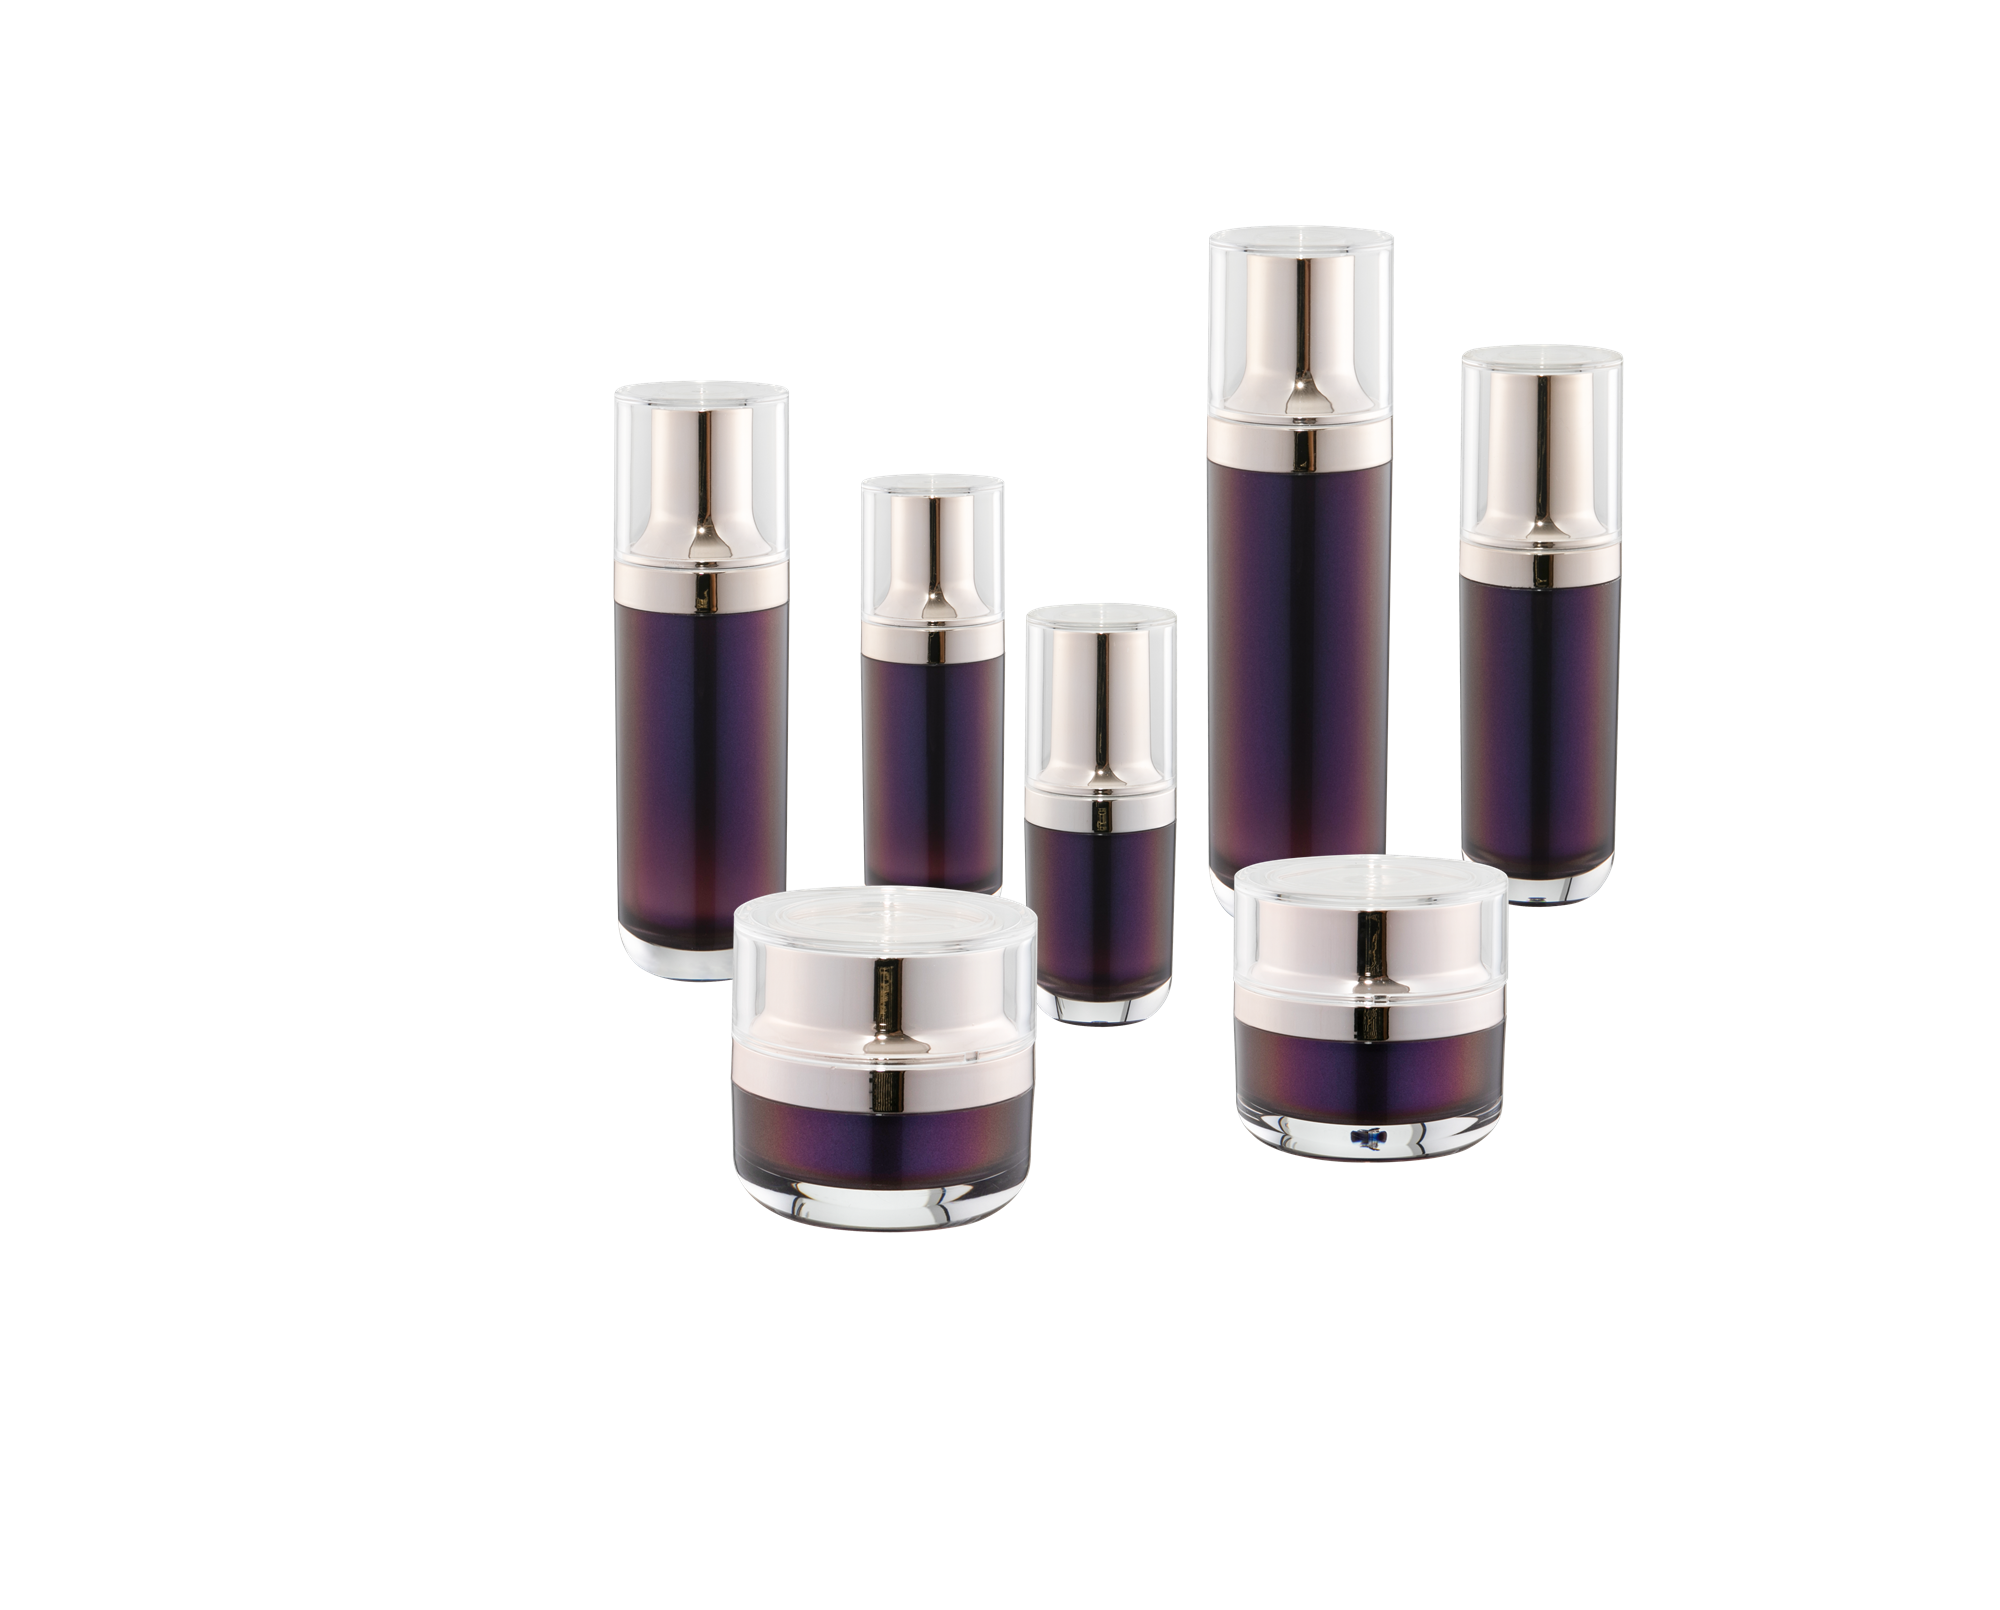 KR-4010 Acrylic cosmetic packaging Hot sell acrylic bottle and jar factory